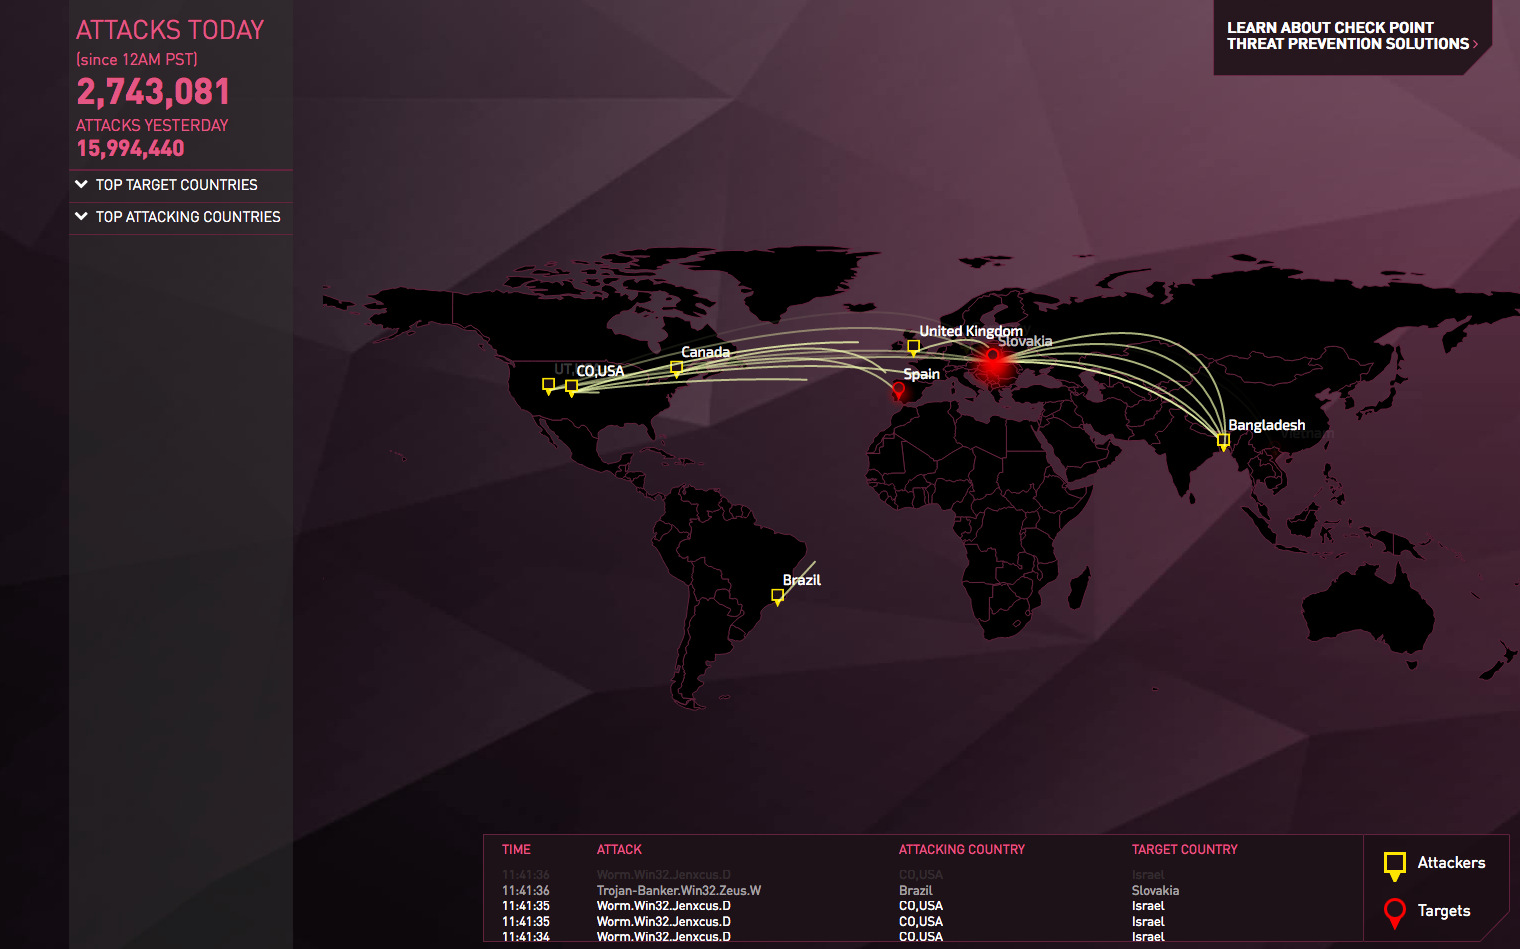 Live cyber attack threat maps stronghold cyber security cutting live cyber attack threat maps stronghold cyber security cutting edge cyber security services 1 800 378 1187 gumiabroncs Image collections